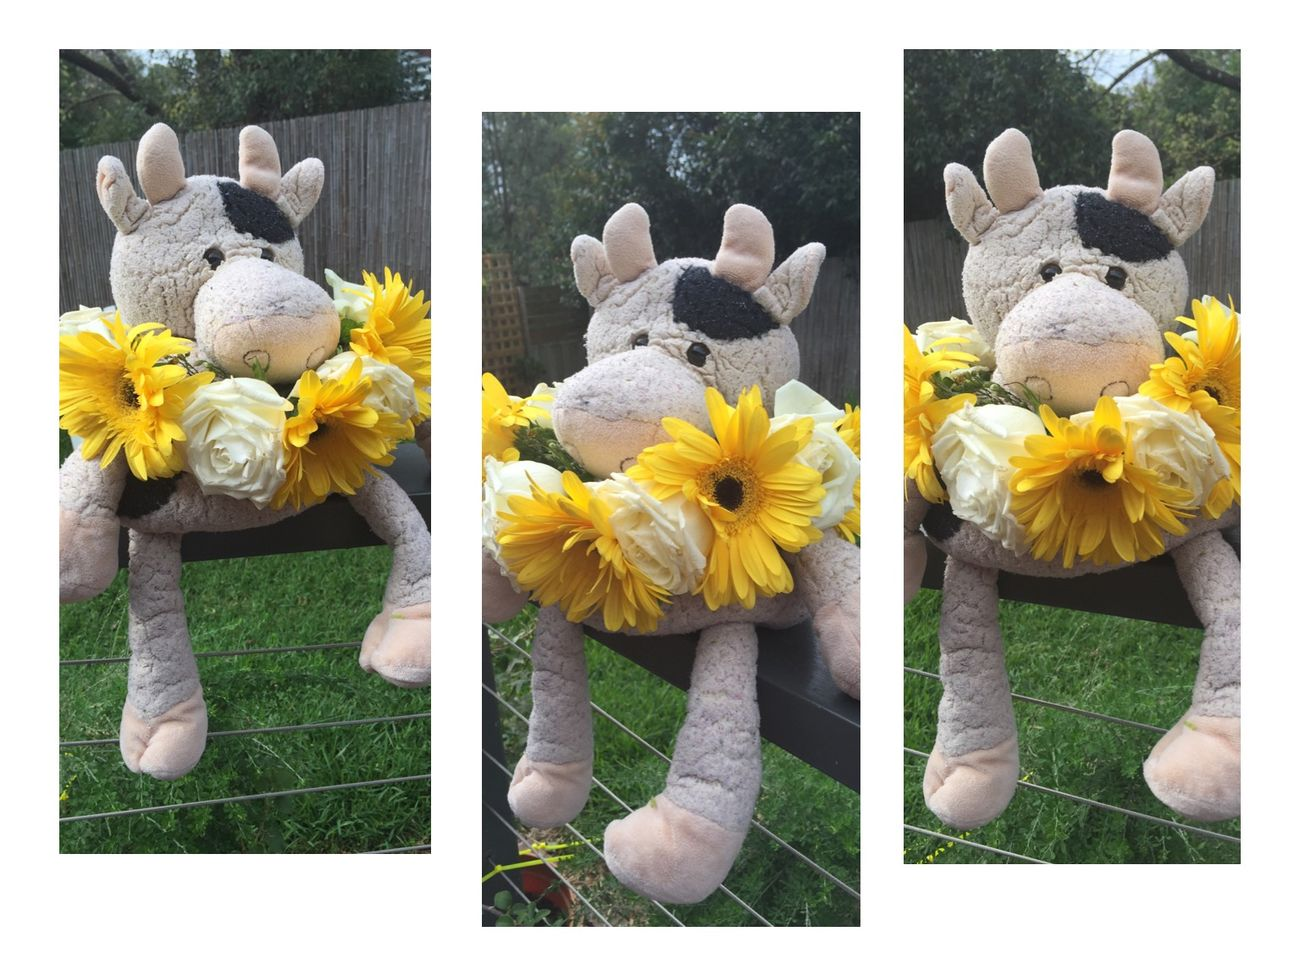 Cute stuffed cow toy with flower's 🐮🐮🐮🌼🌼🌼 Cow Toy Flowers Cute Photography